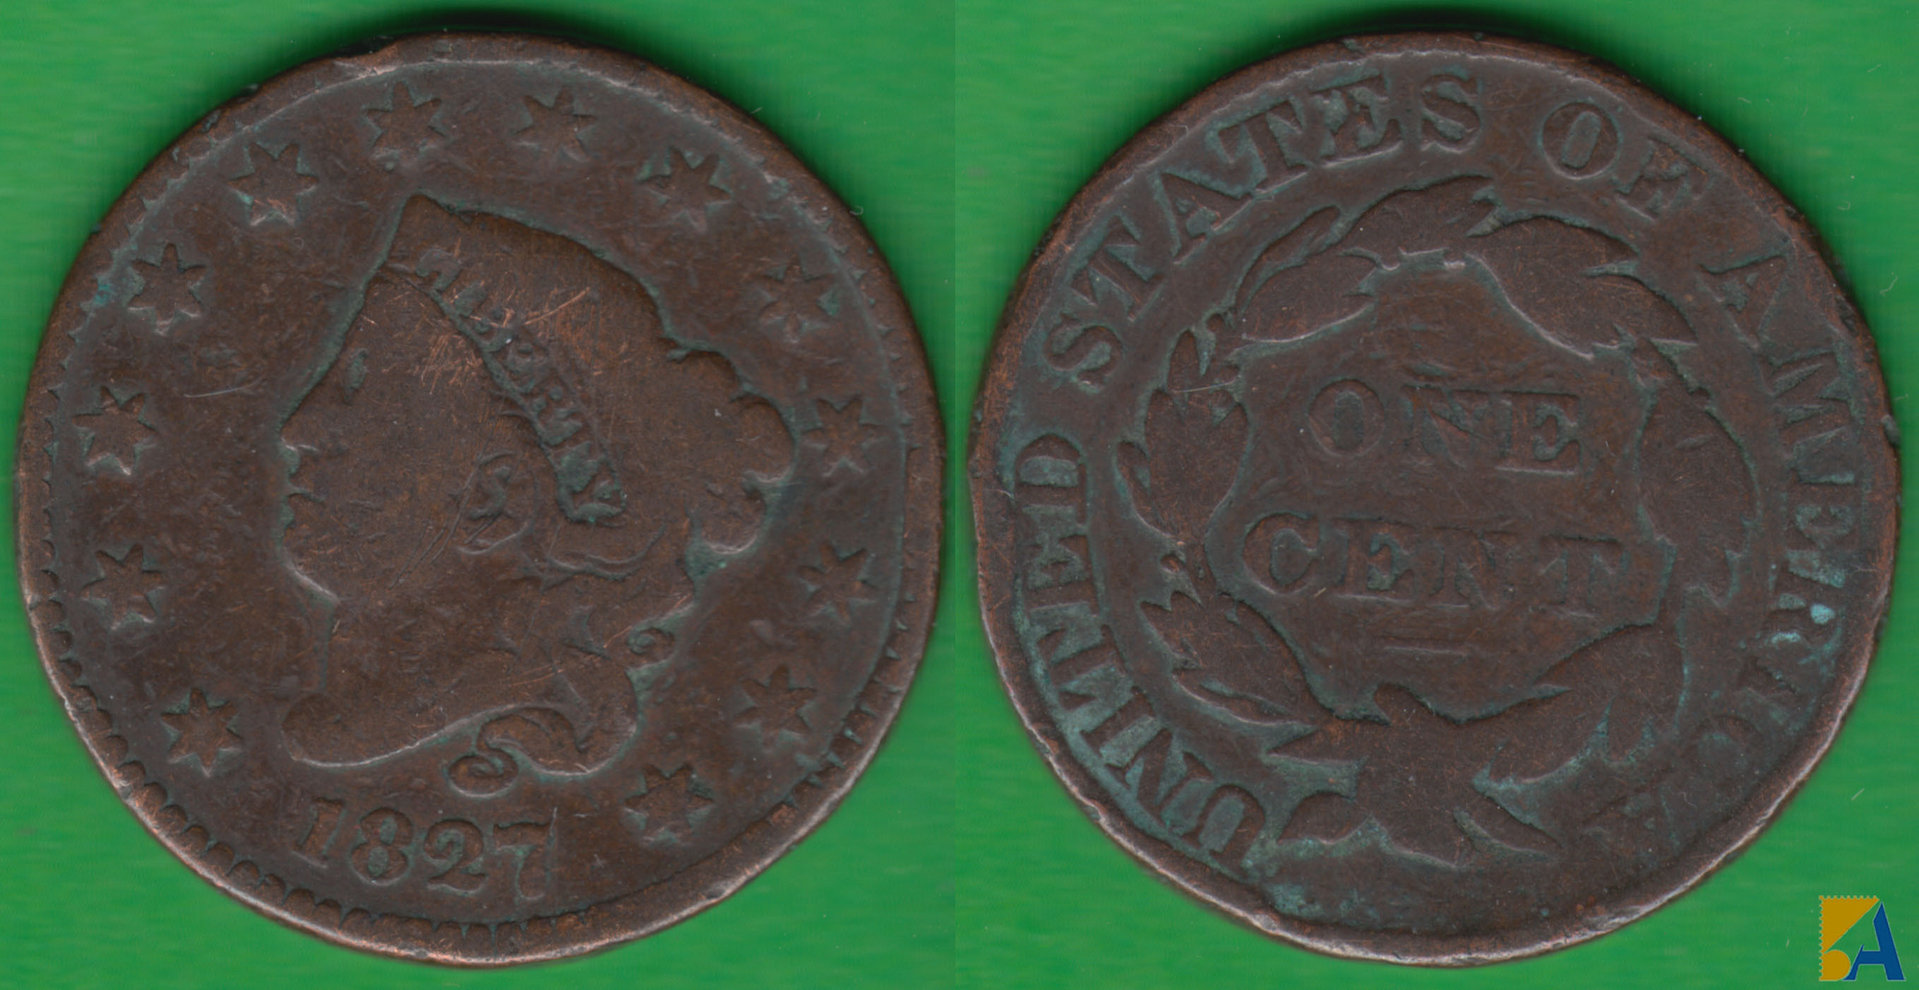 ESTADOS UNIDOS - UNITED STATES. 1 CENTIMO (CENT) DE 1827.